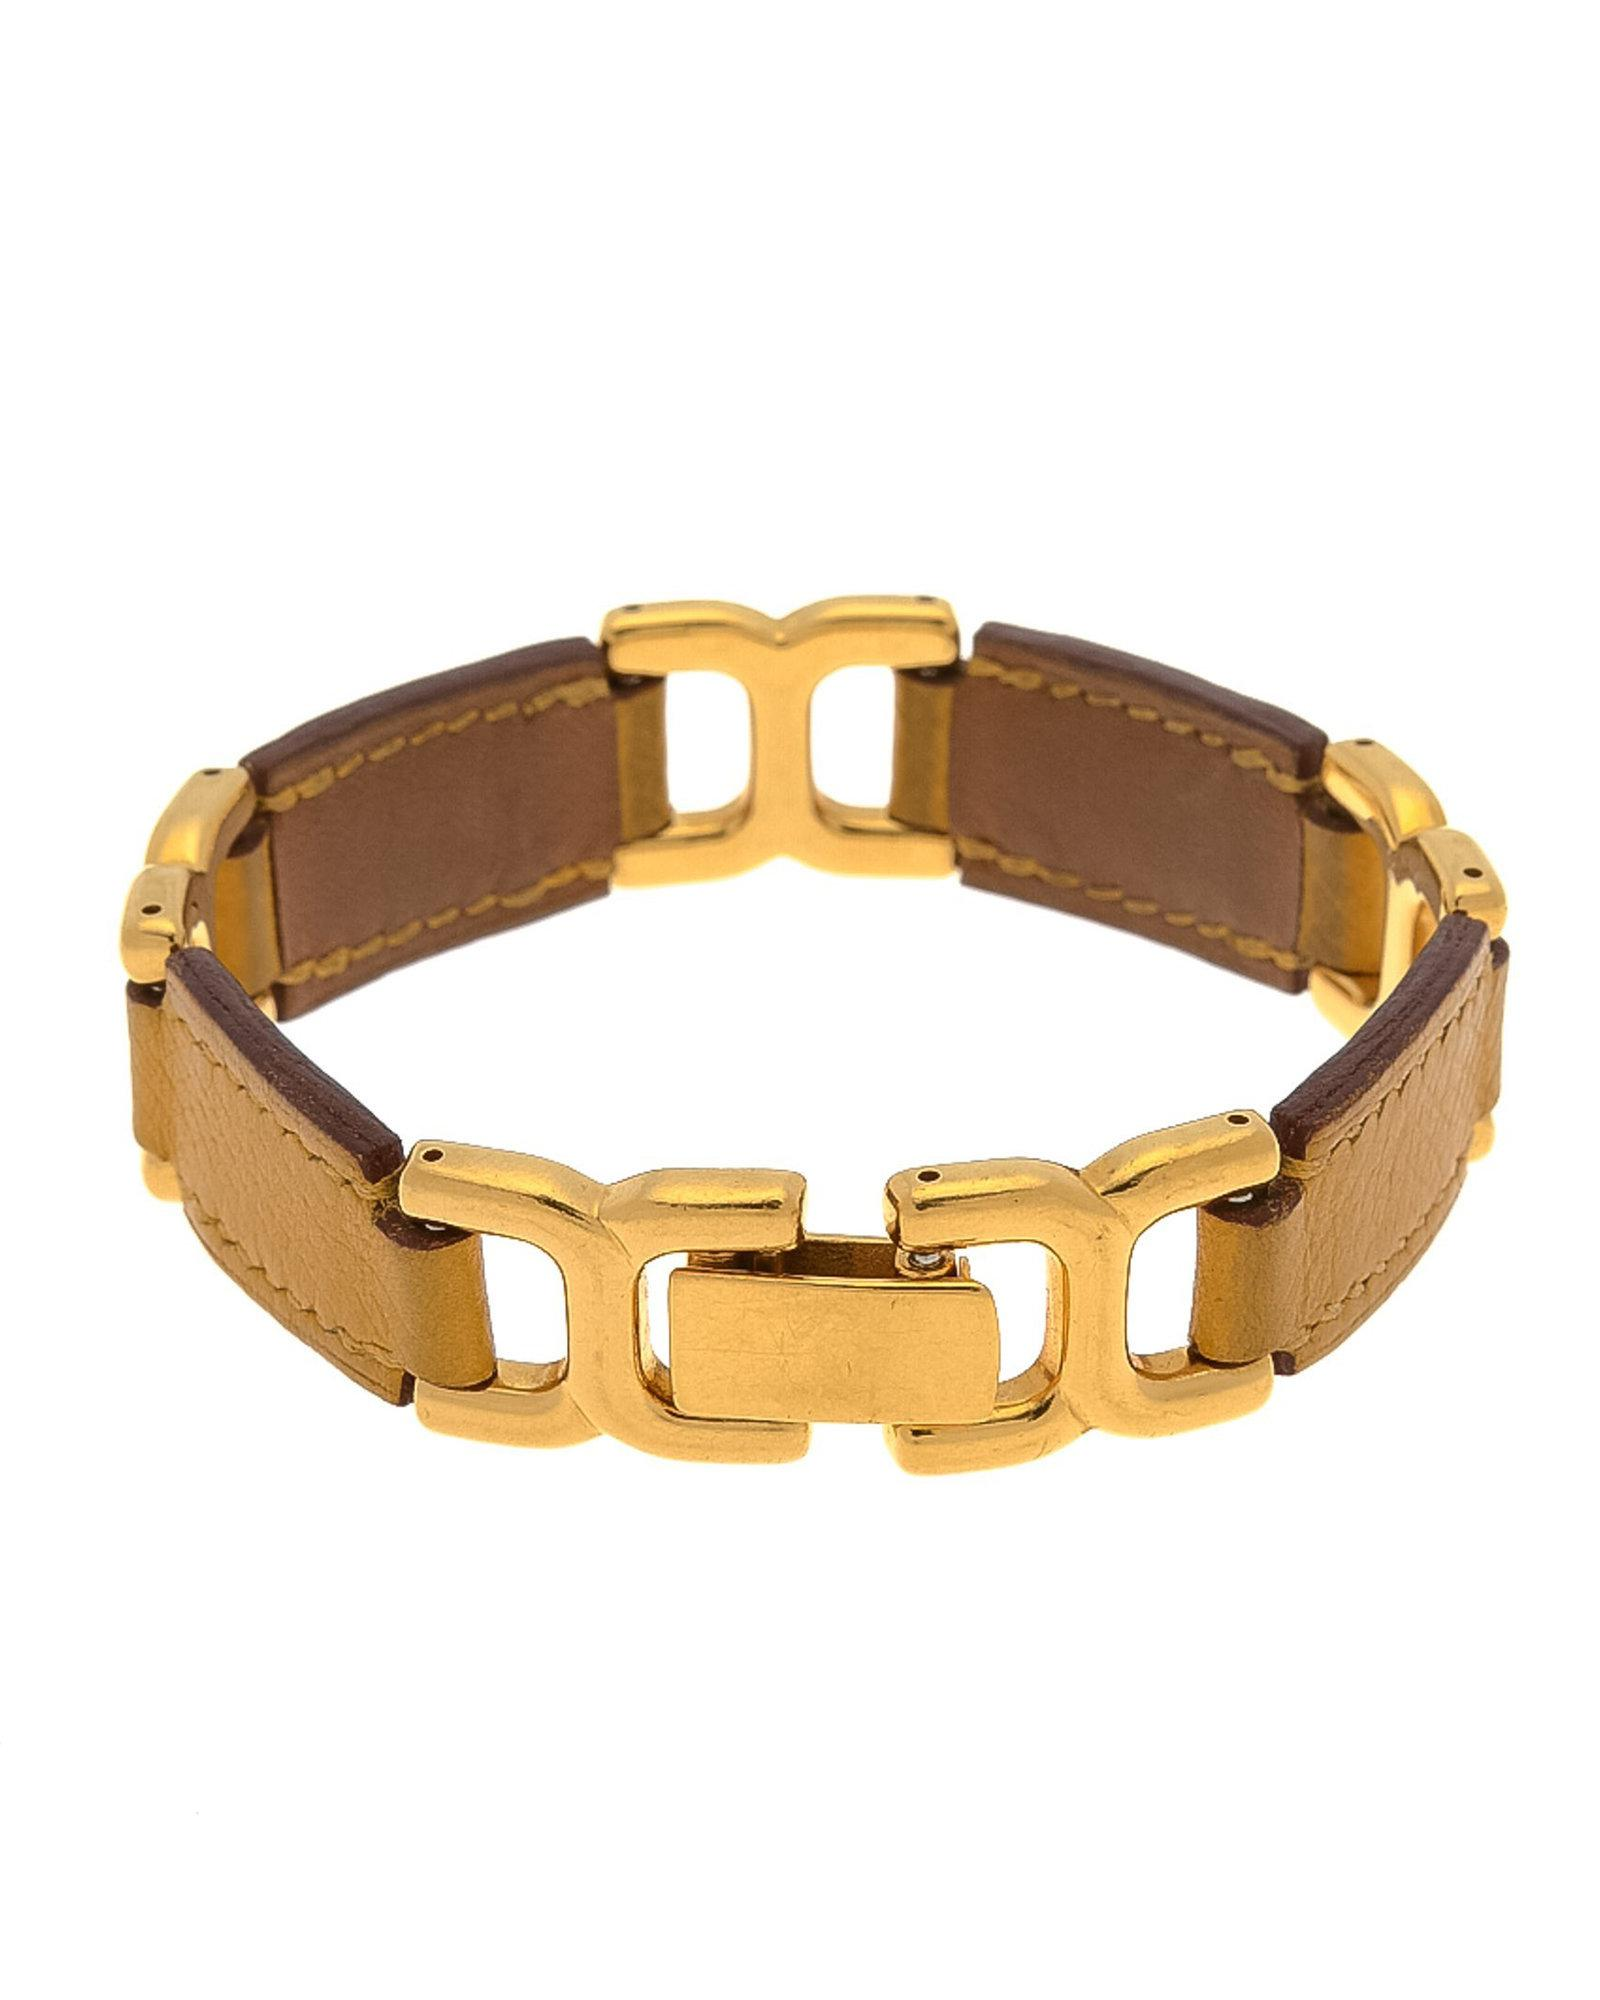 0bc22d588246 Hermès Leather Link Bracelet 18.5cm - Vintage in Yellow - Lyst